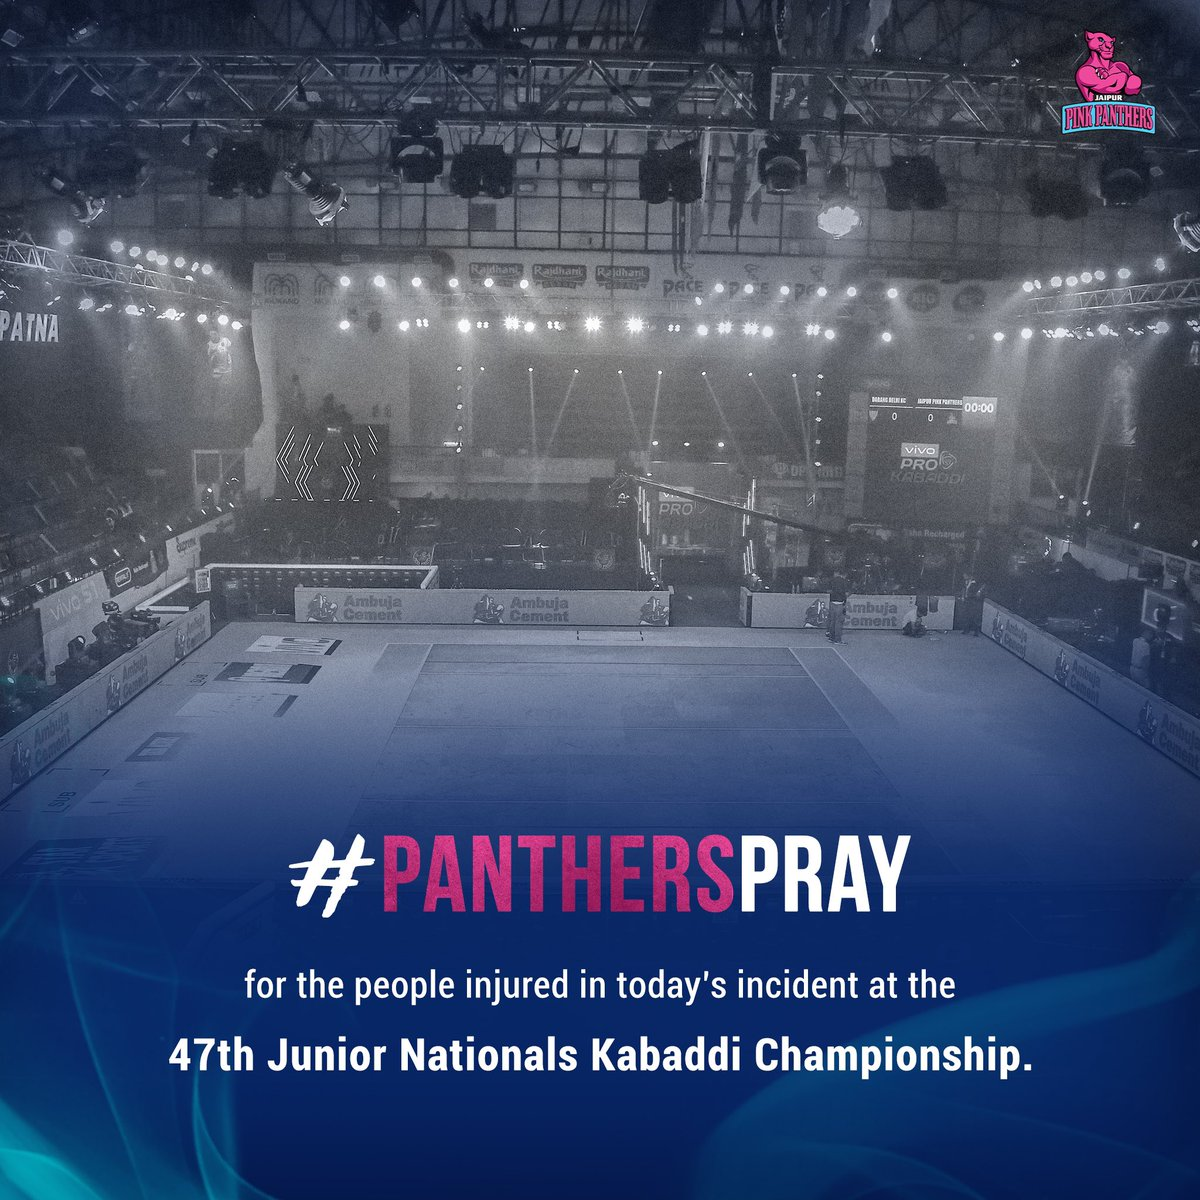 We pray for the speedy recovery of the ones injured in today's accident 🙏  #PanthersPray #JaipurPinkPanthers #JaiHanuman